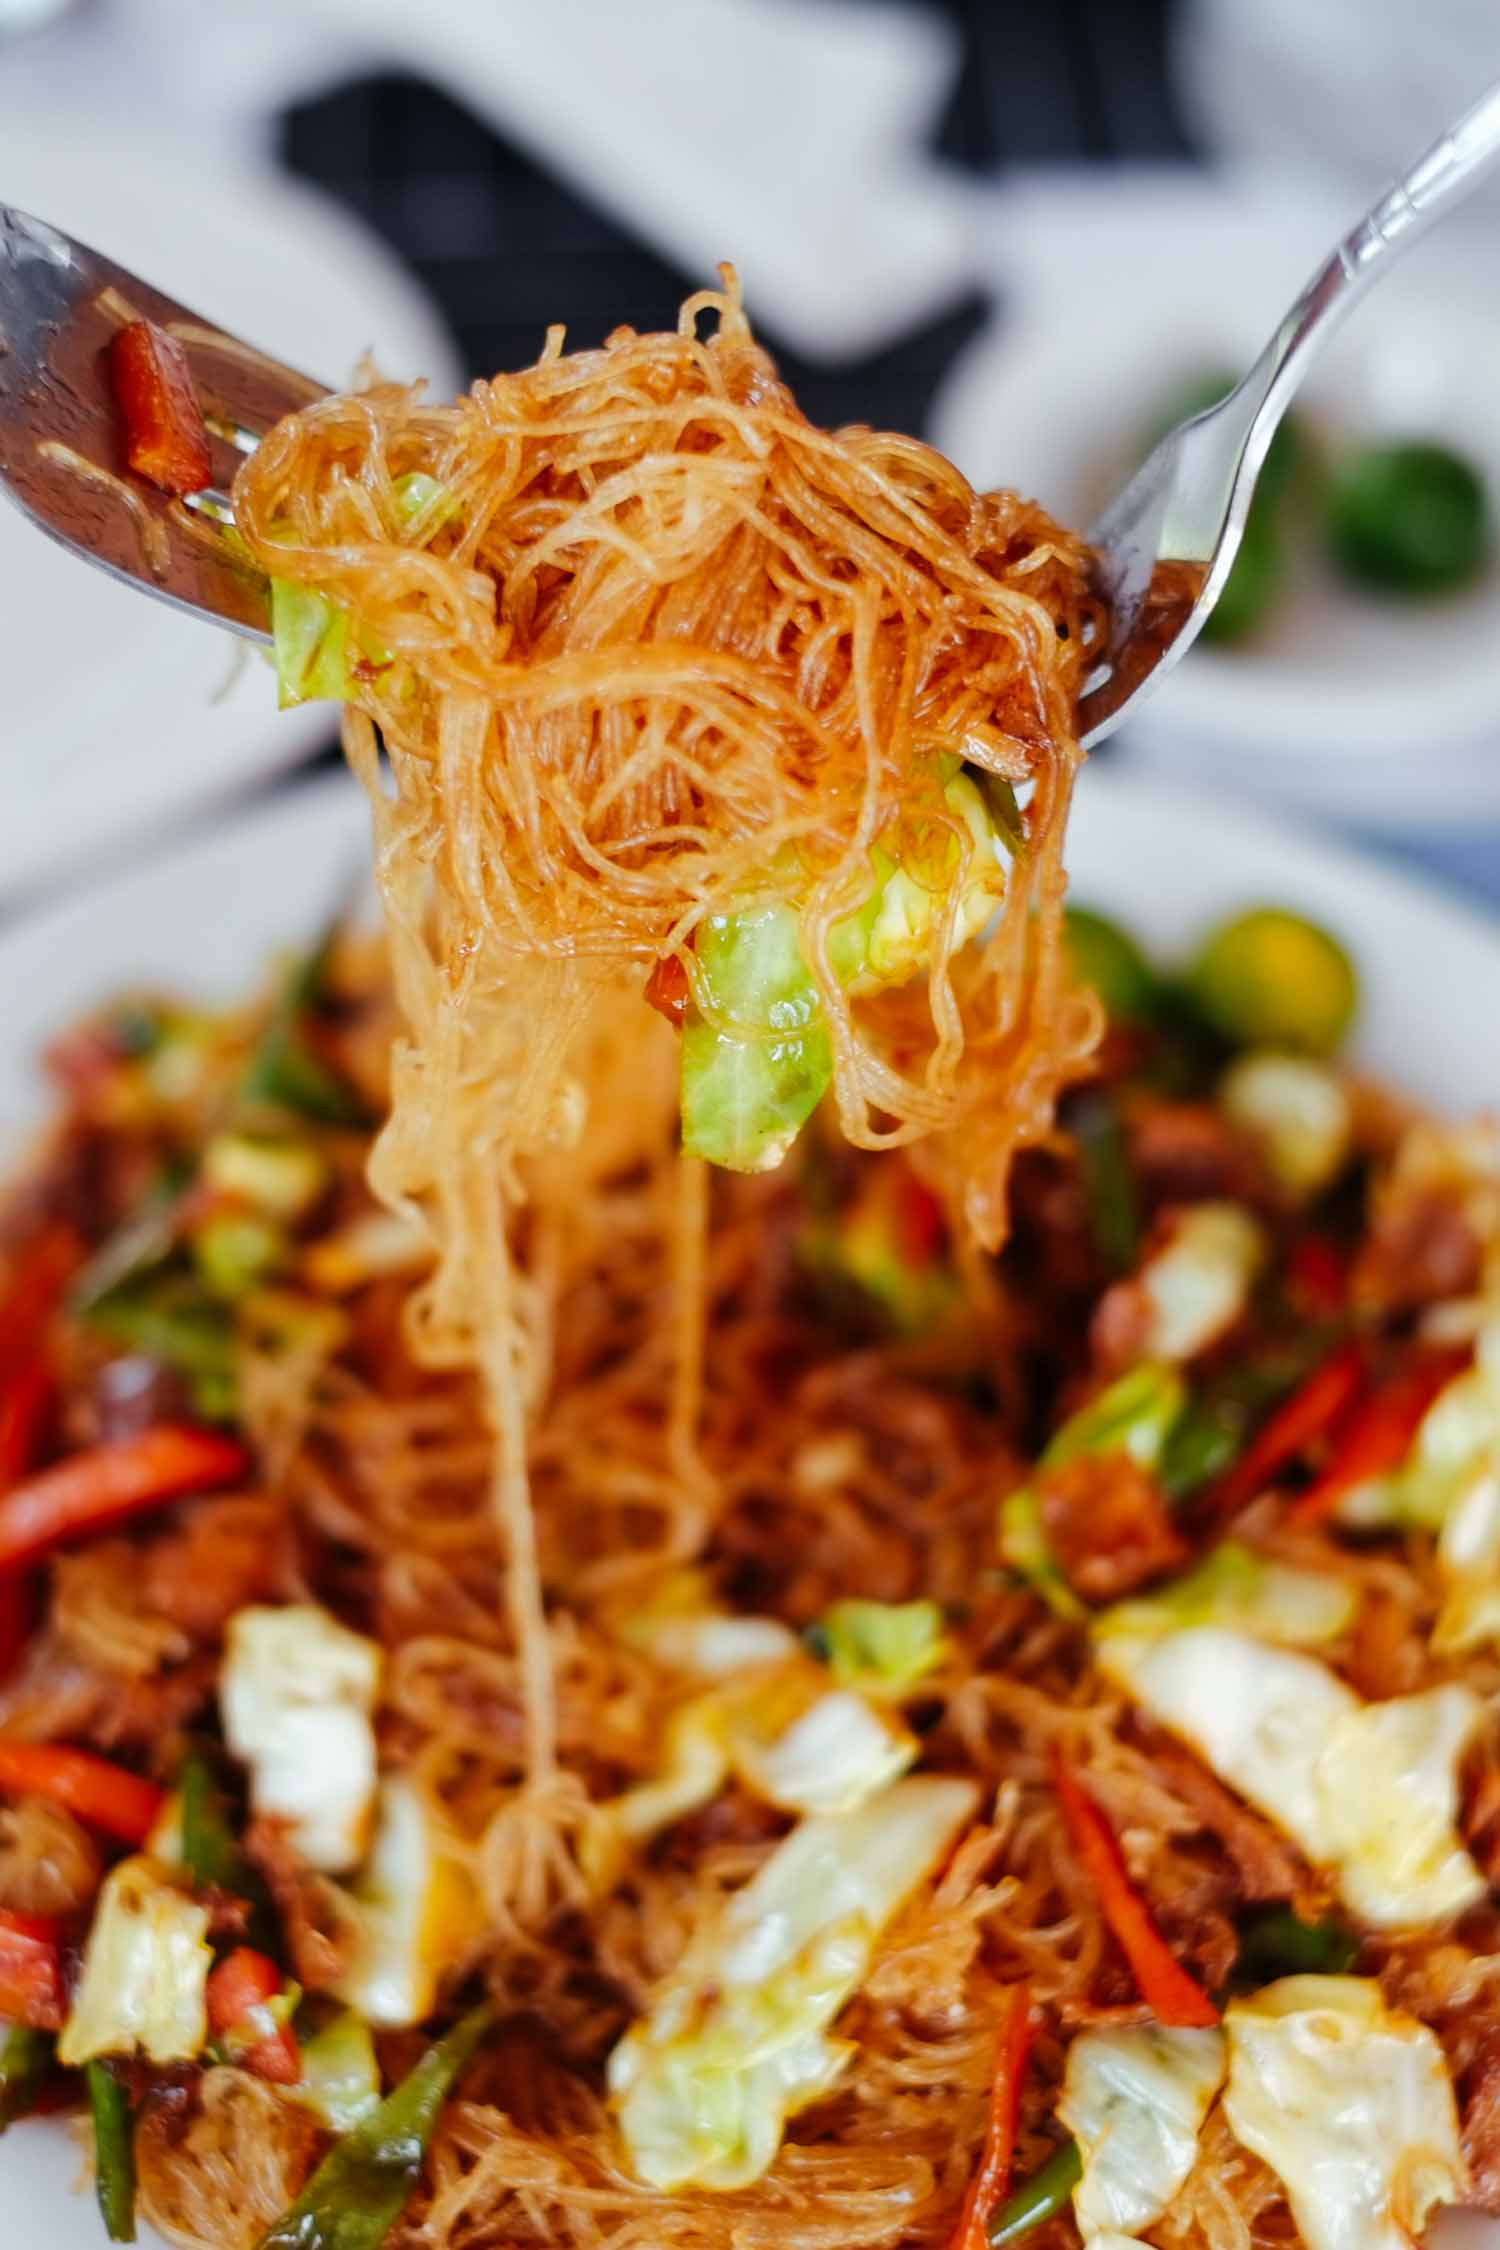 Pancit noodles held on a fork above a Filipino food dish